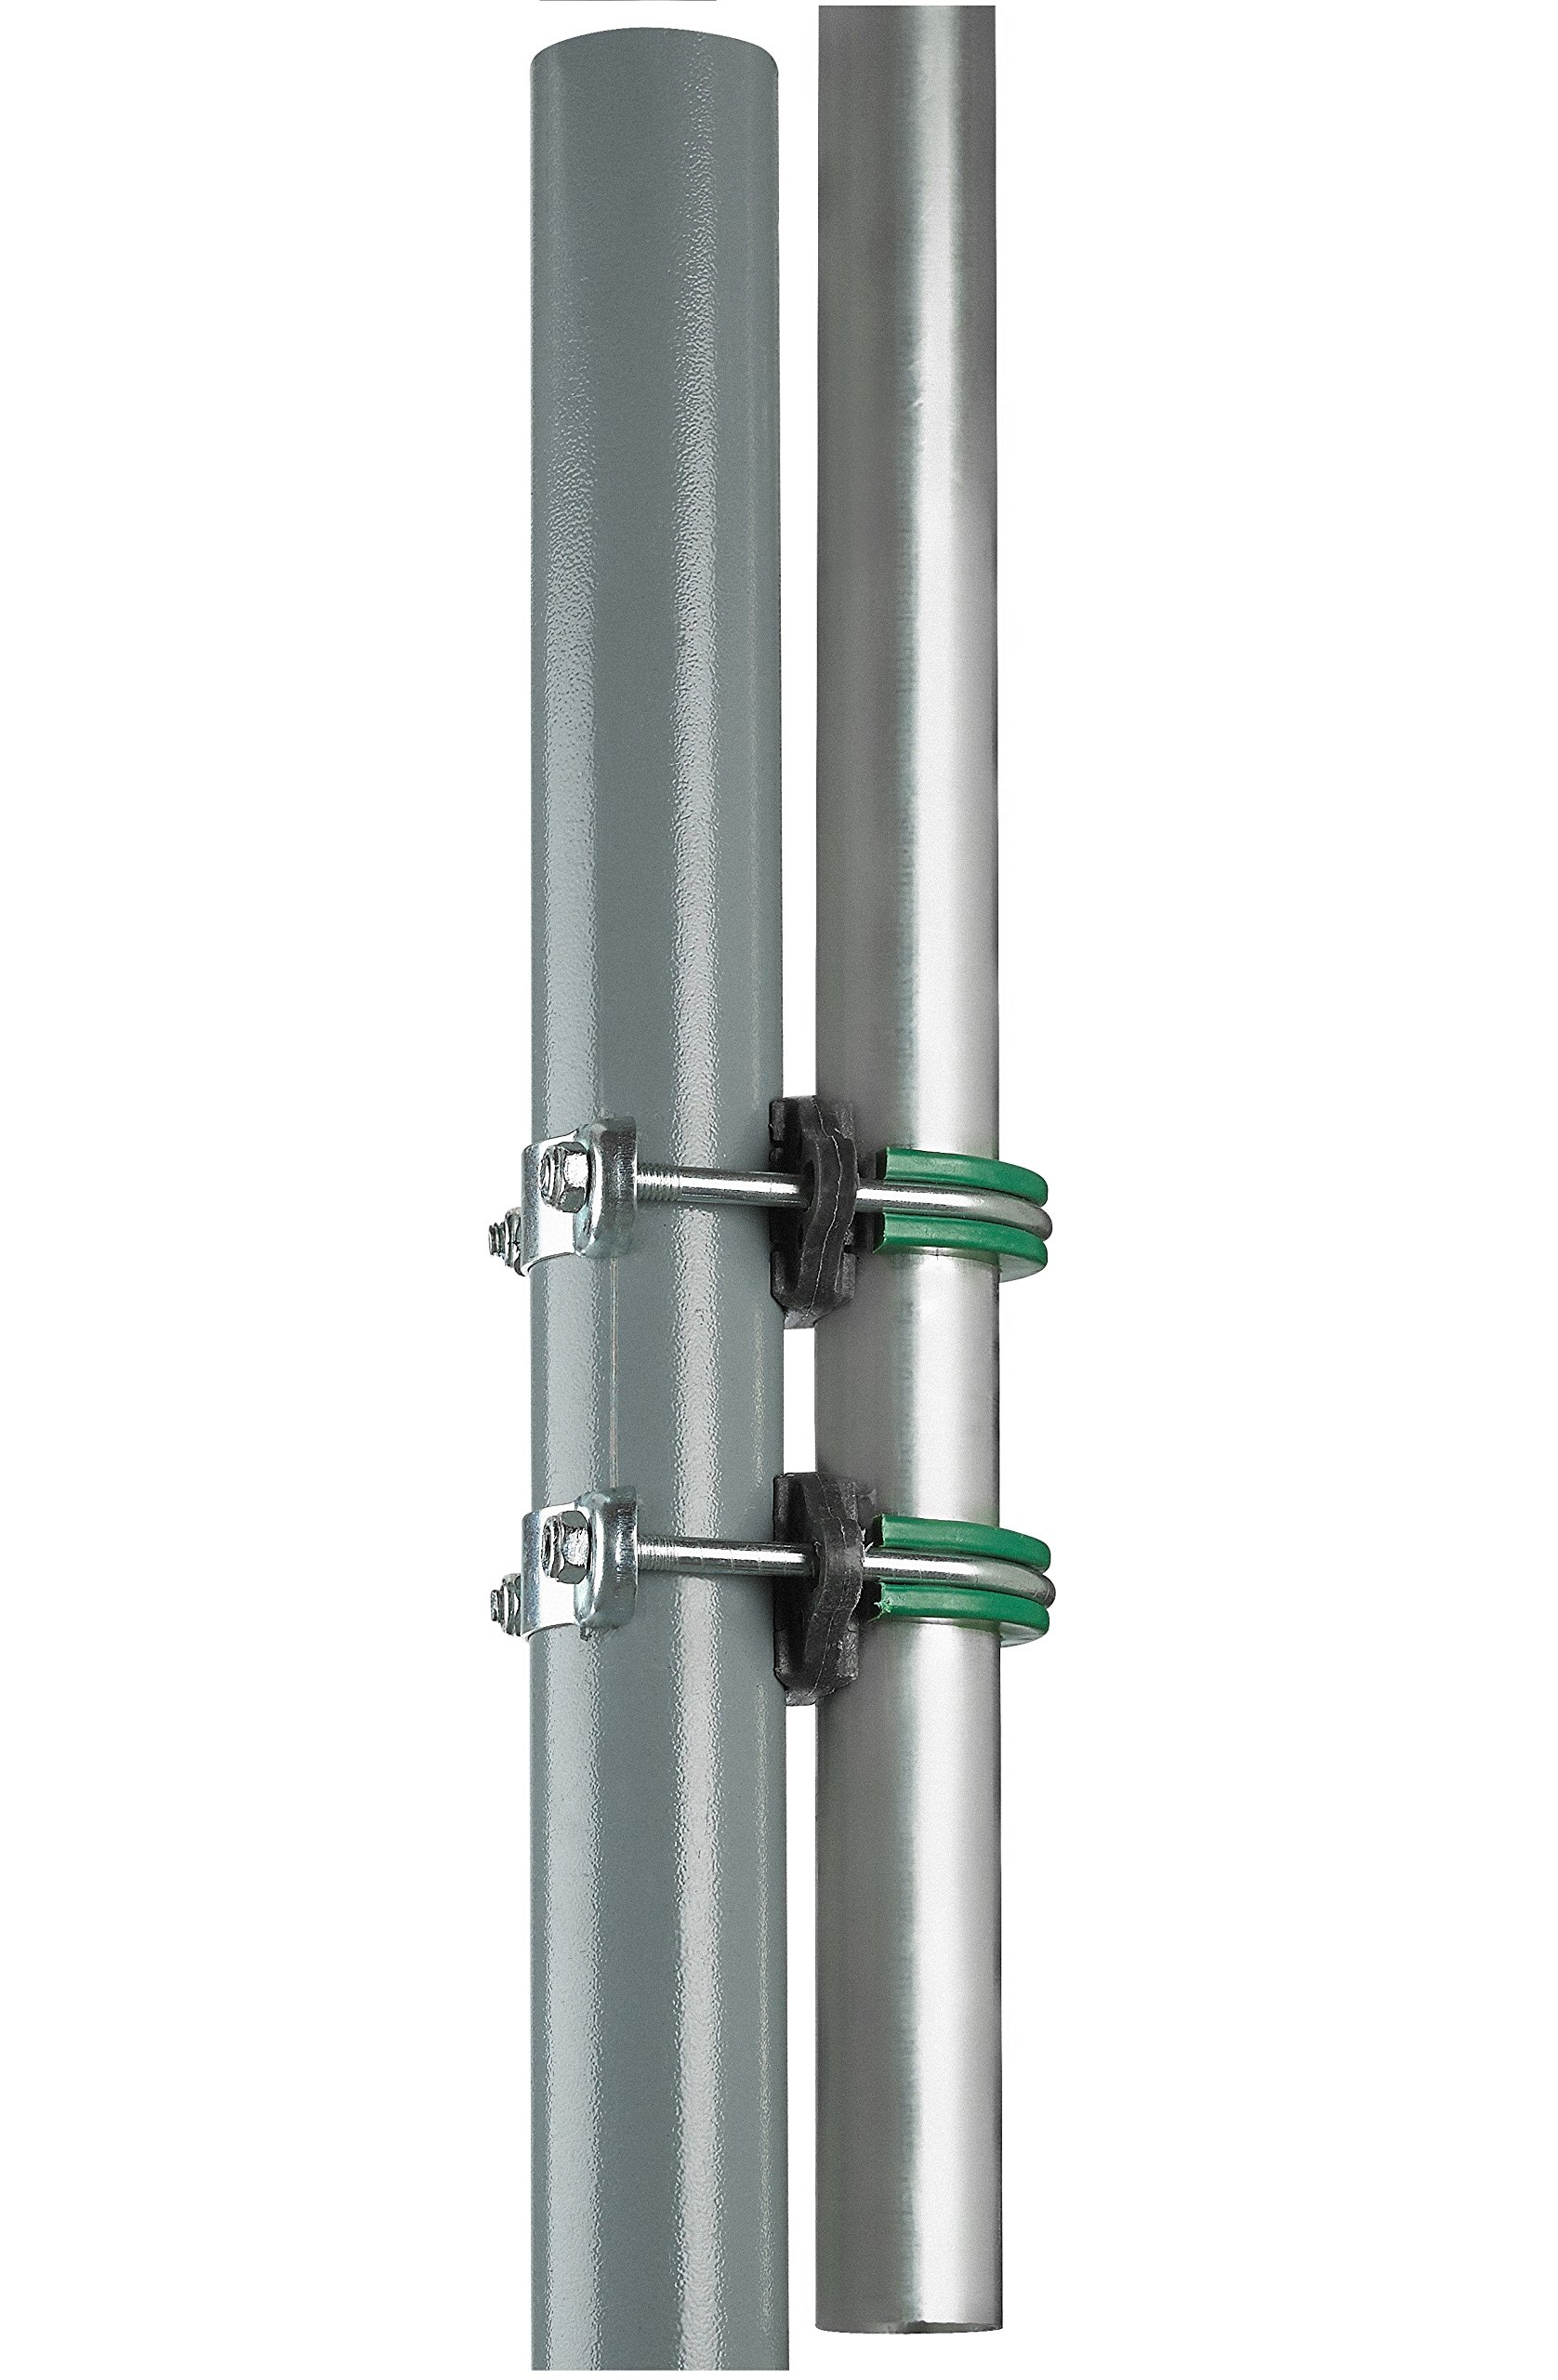 Trampoline Replacement Enclosure Poles & Hardware, Set of 8 (Net Sold Separately) by Upper Bounce (Image #5)